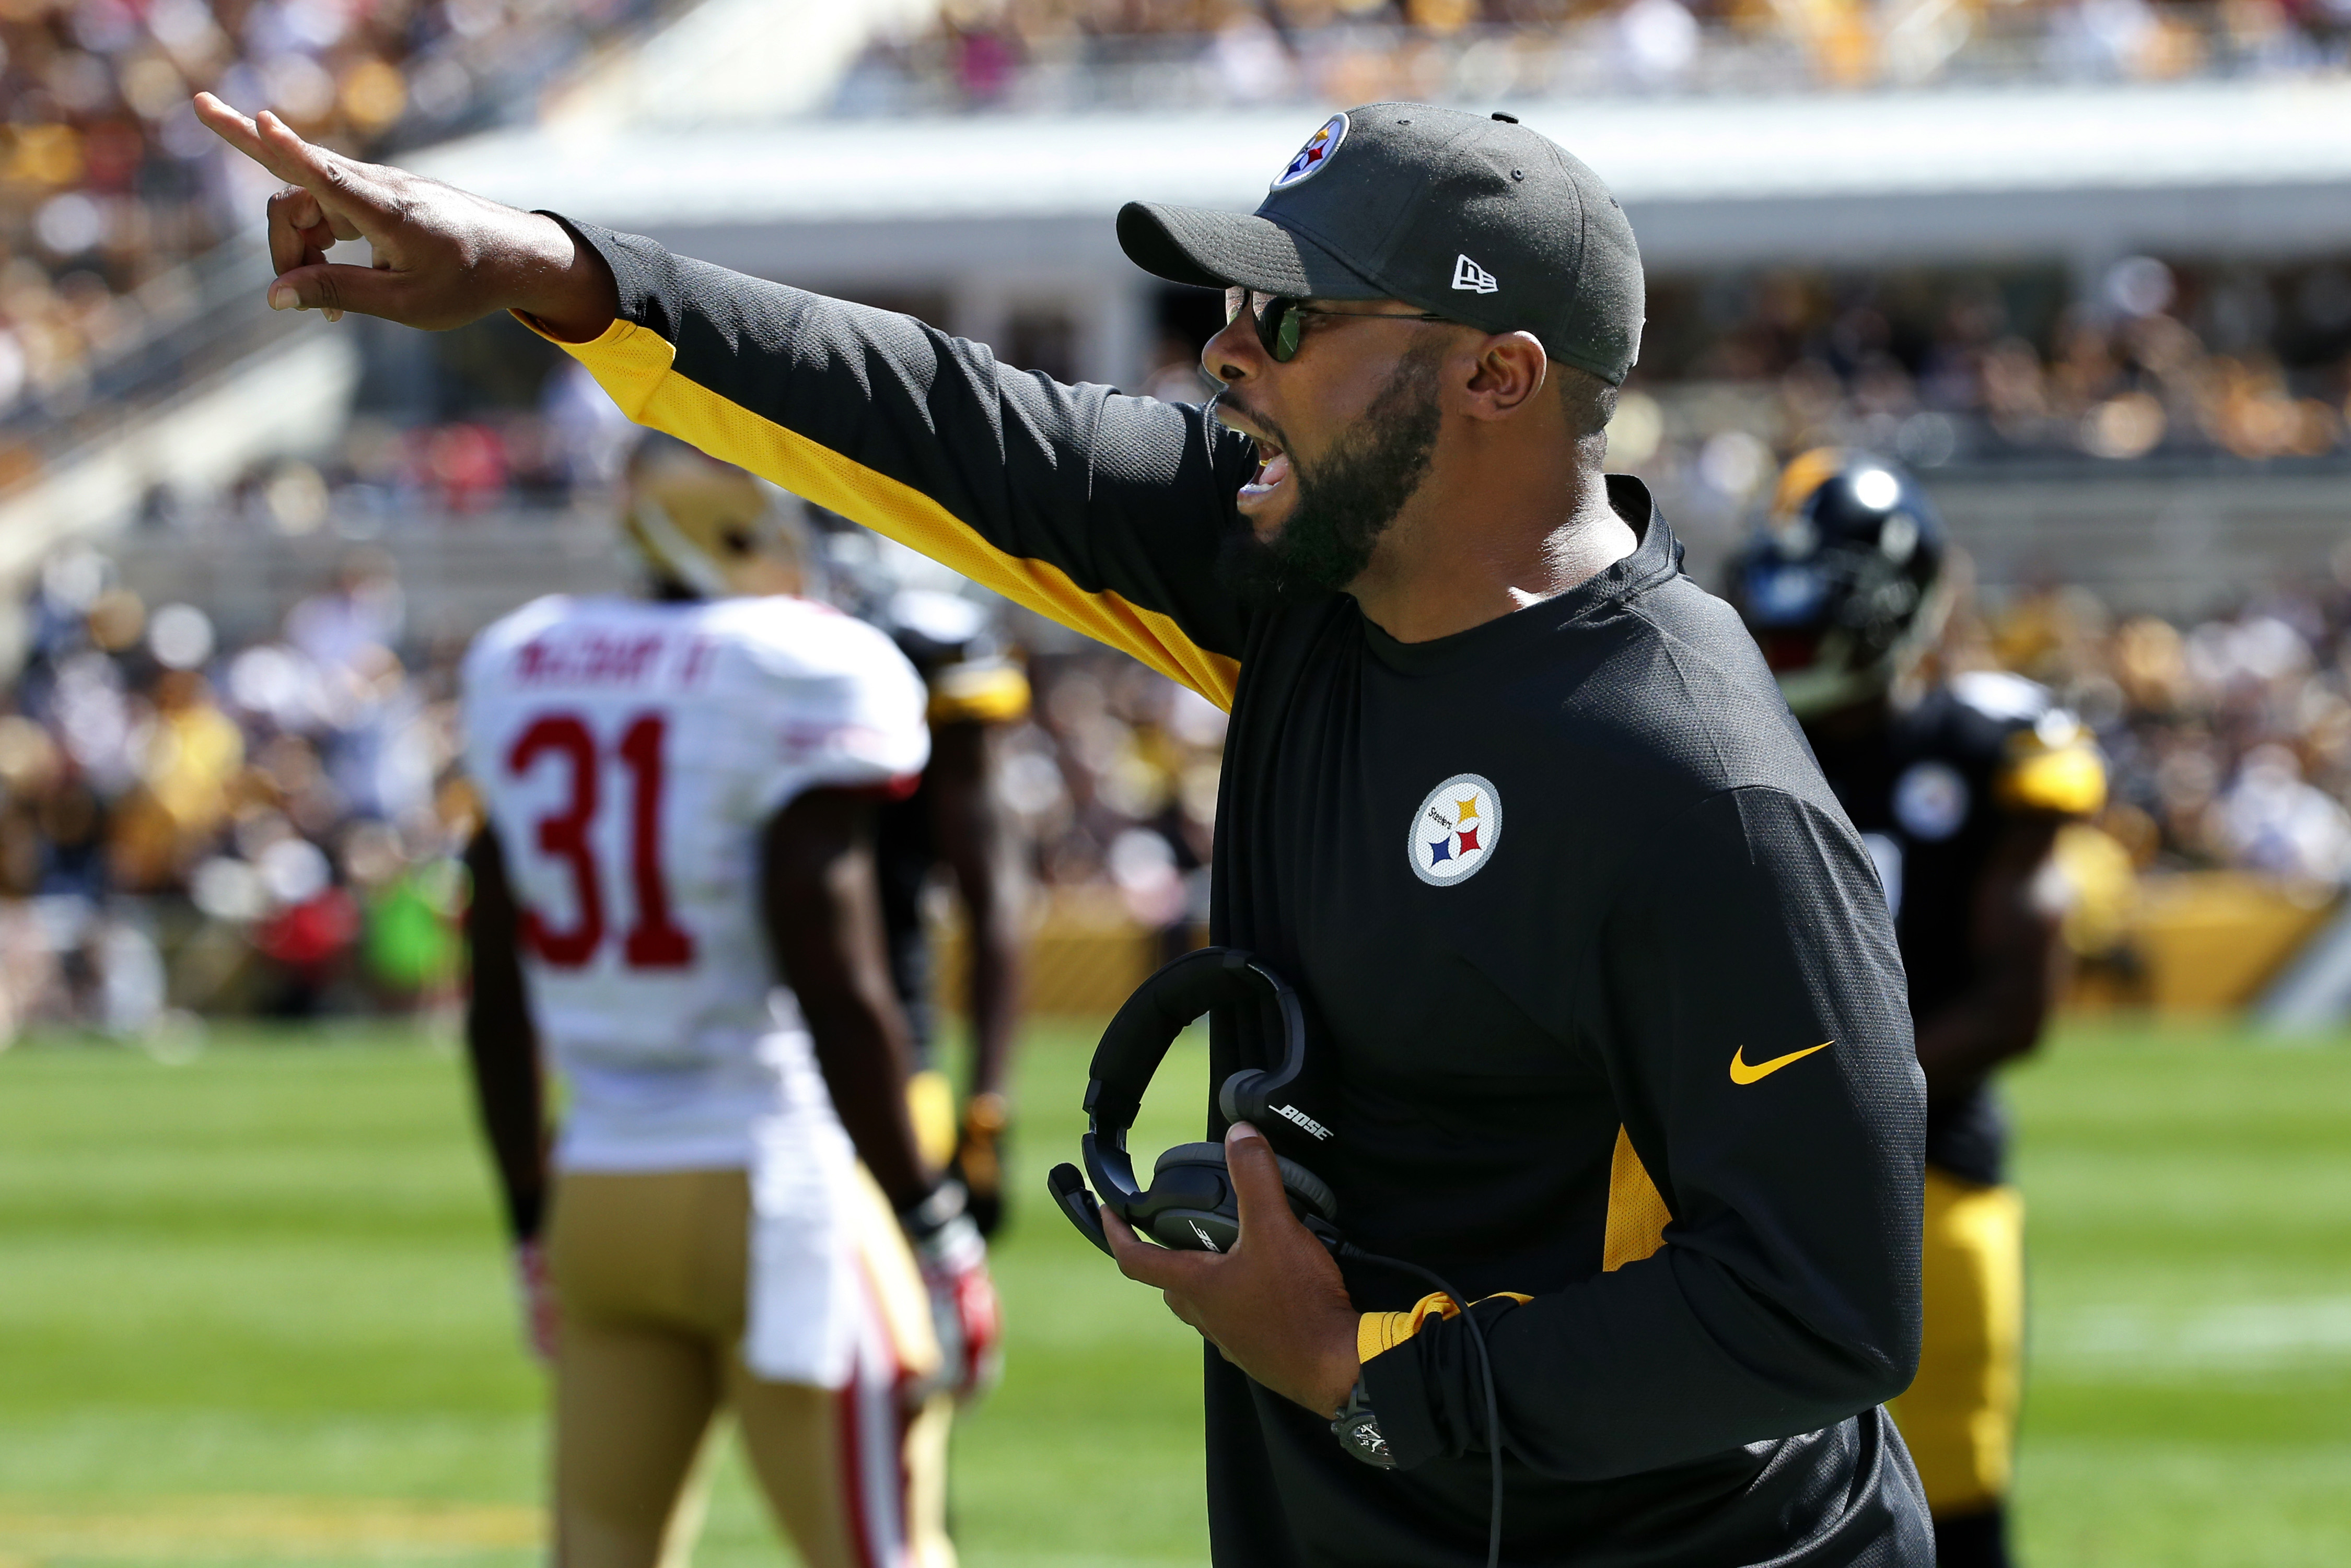 FILE - In this Sept. 20, 2015, file photo, Pittsburgh Steelers coach Mike Tomlin yells instructions from the sideline during an NFL football game between the Steelers and the San Francisco 49ers in Pittsburgh. The Steelers converted a pair of 2-pointers e